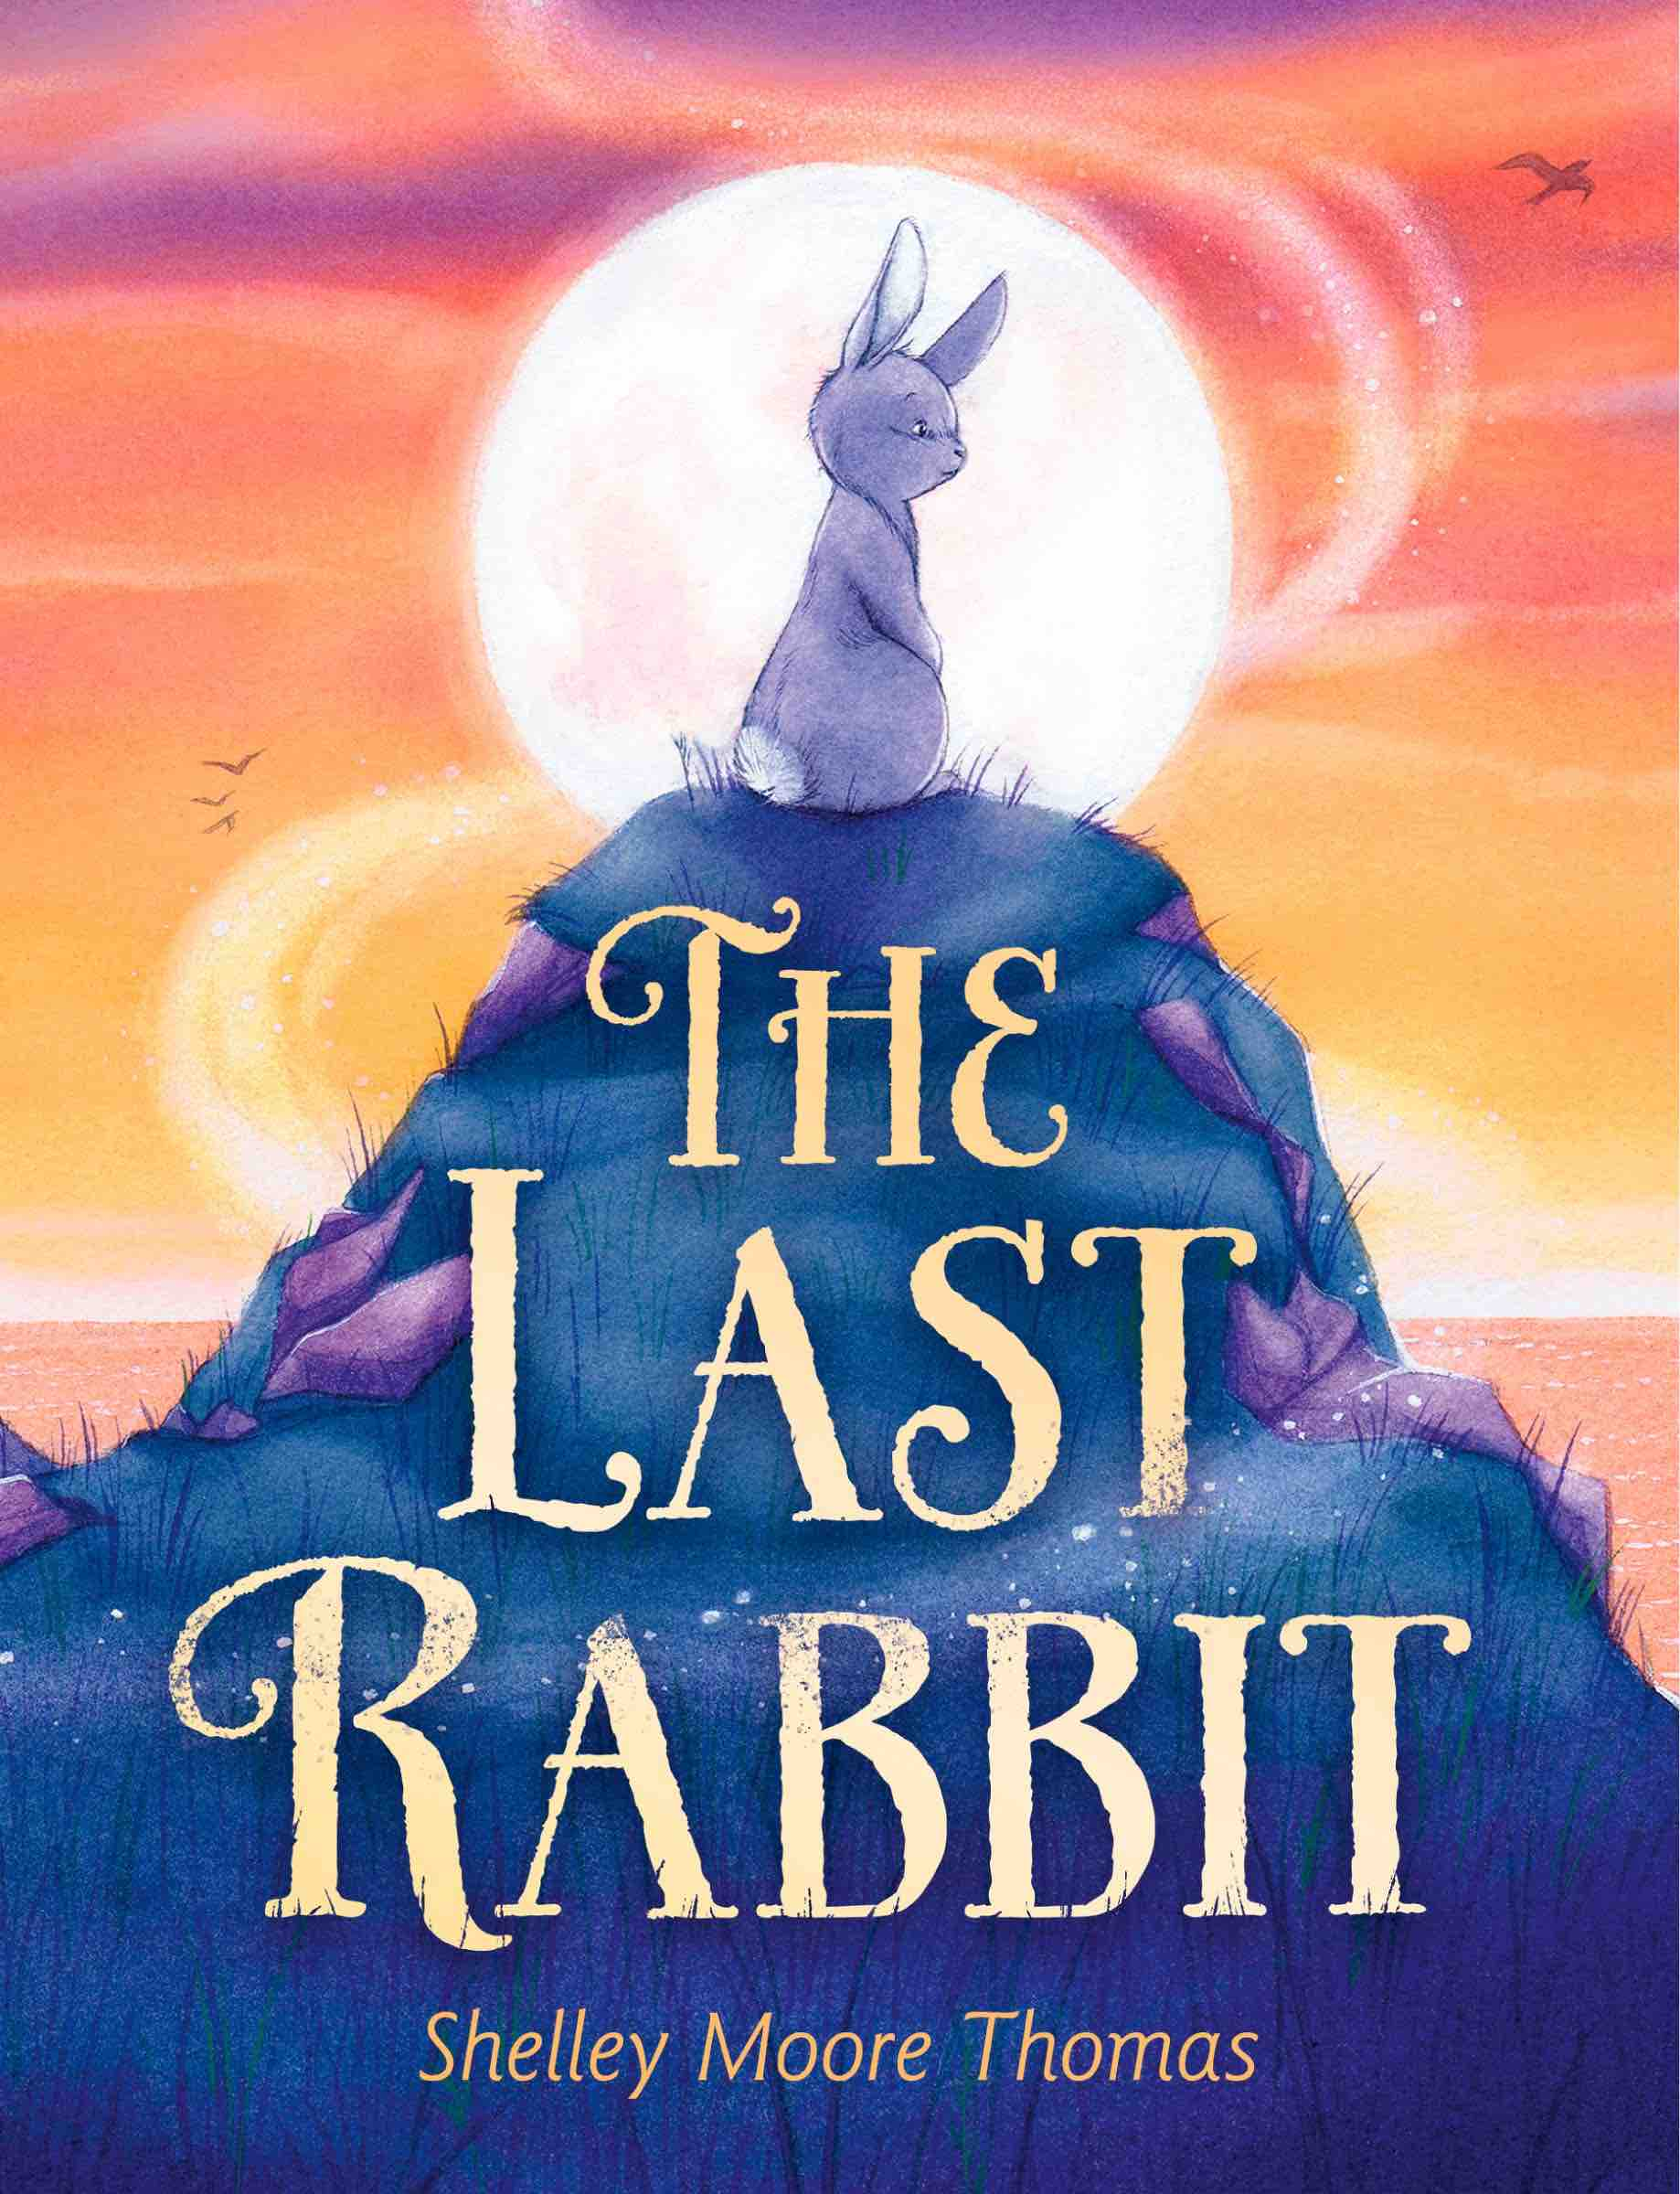 Last Rabbit Shelley Moore Thomas